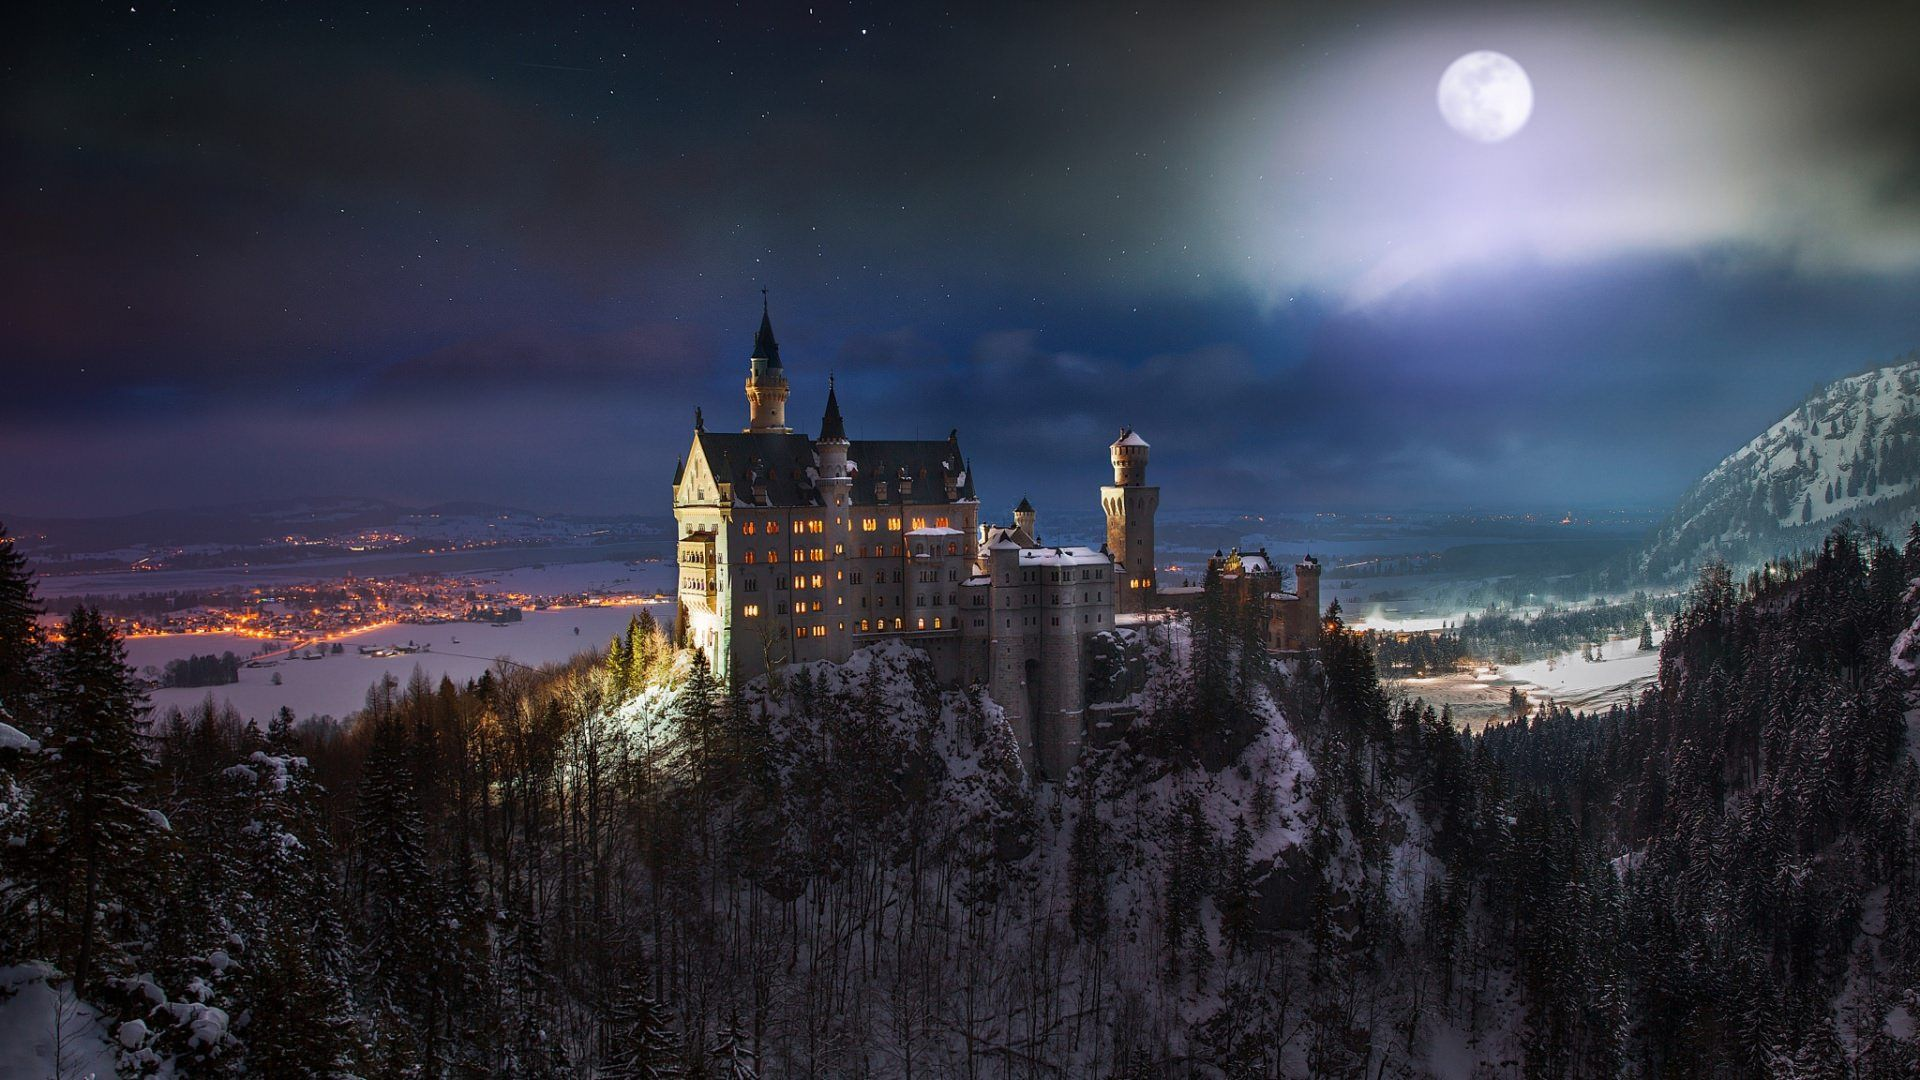 My Top 10 Wallpapers Of All Time What Is Your Favorite Neuschwanstein Castle Castle Castle Painting